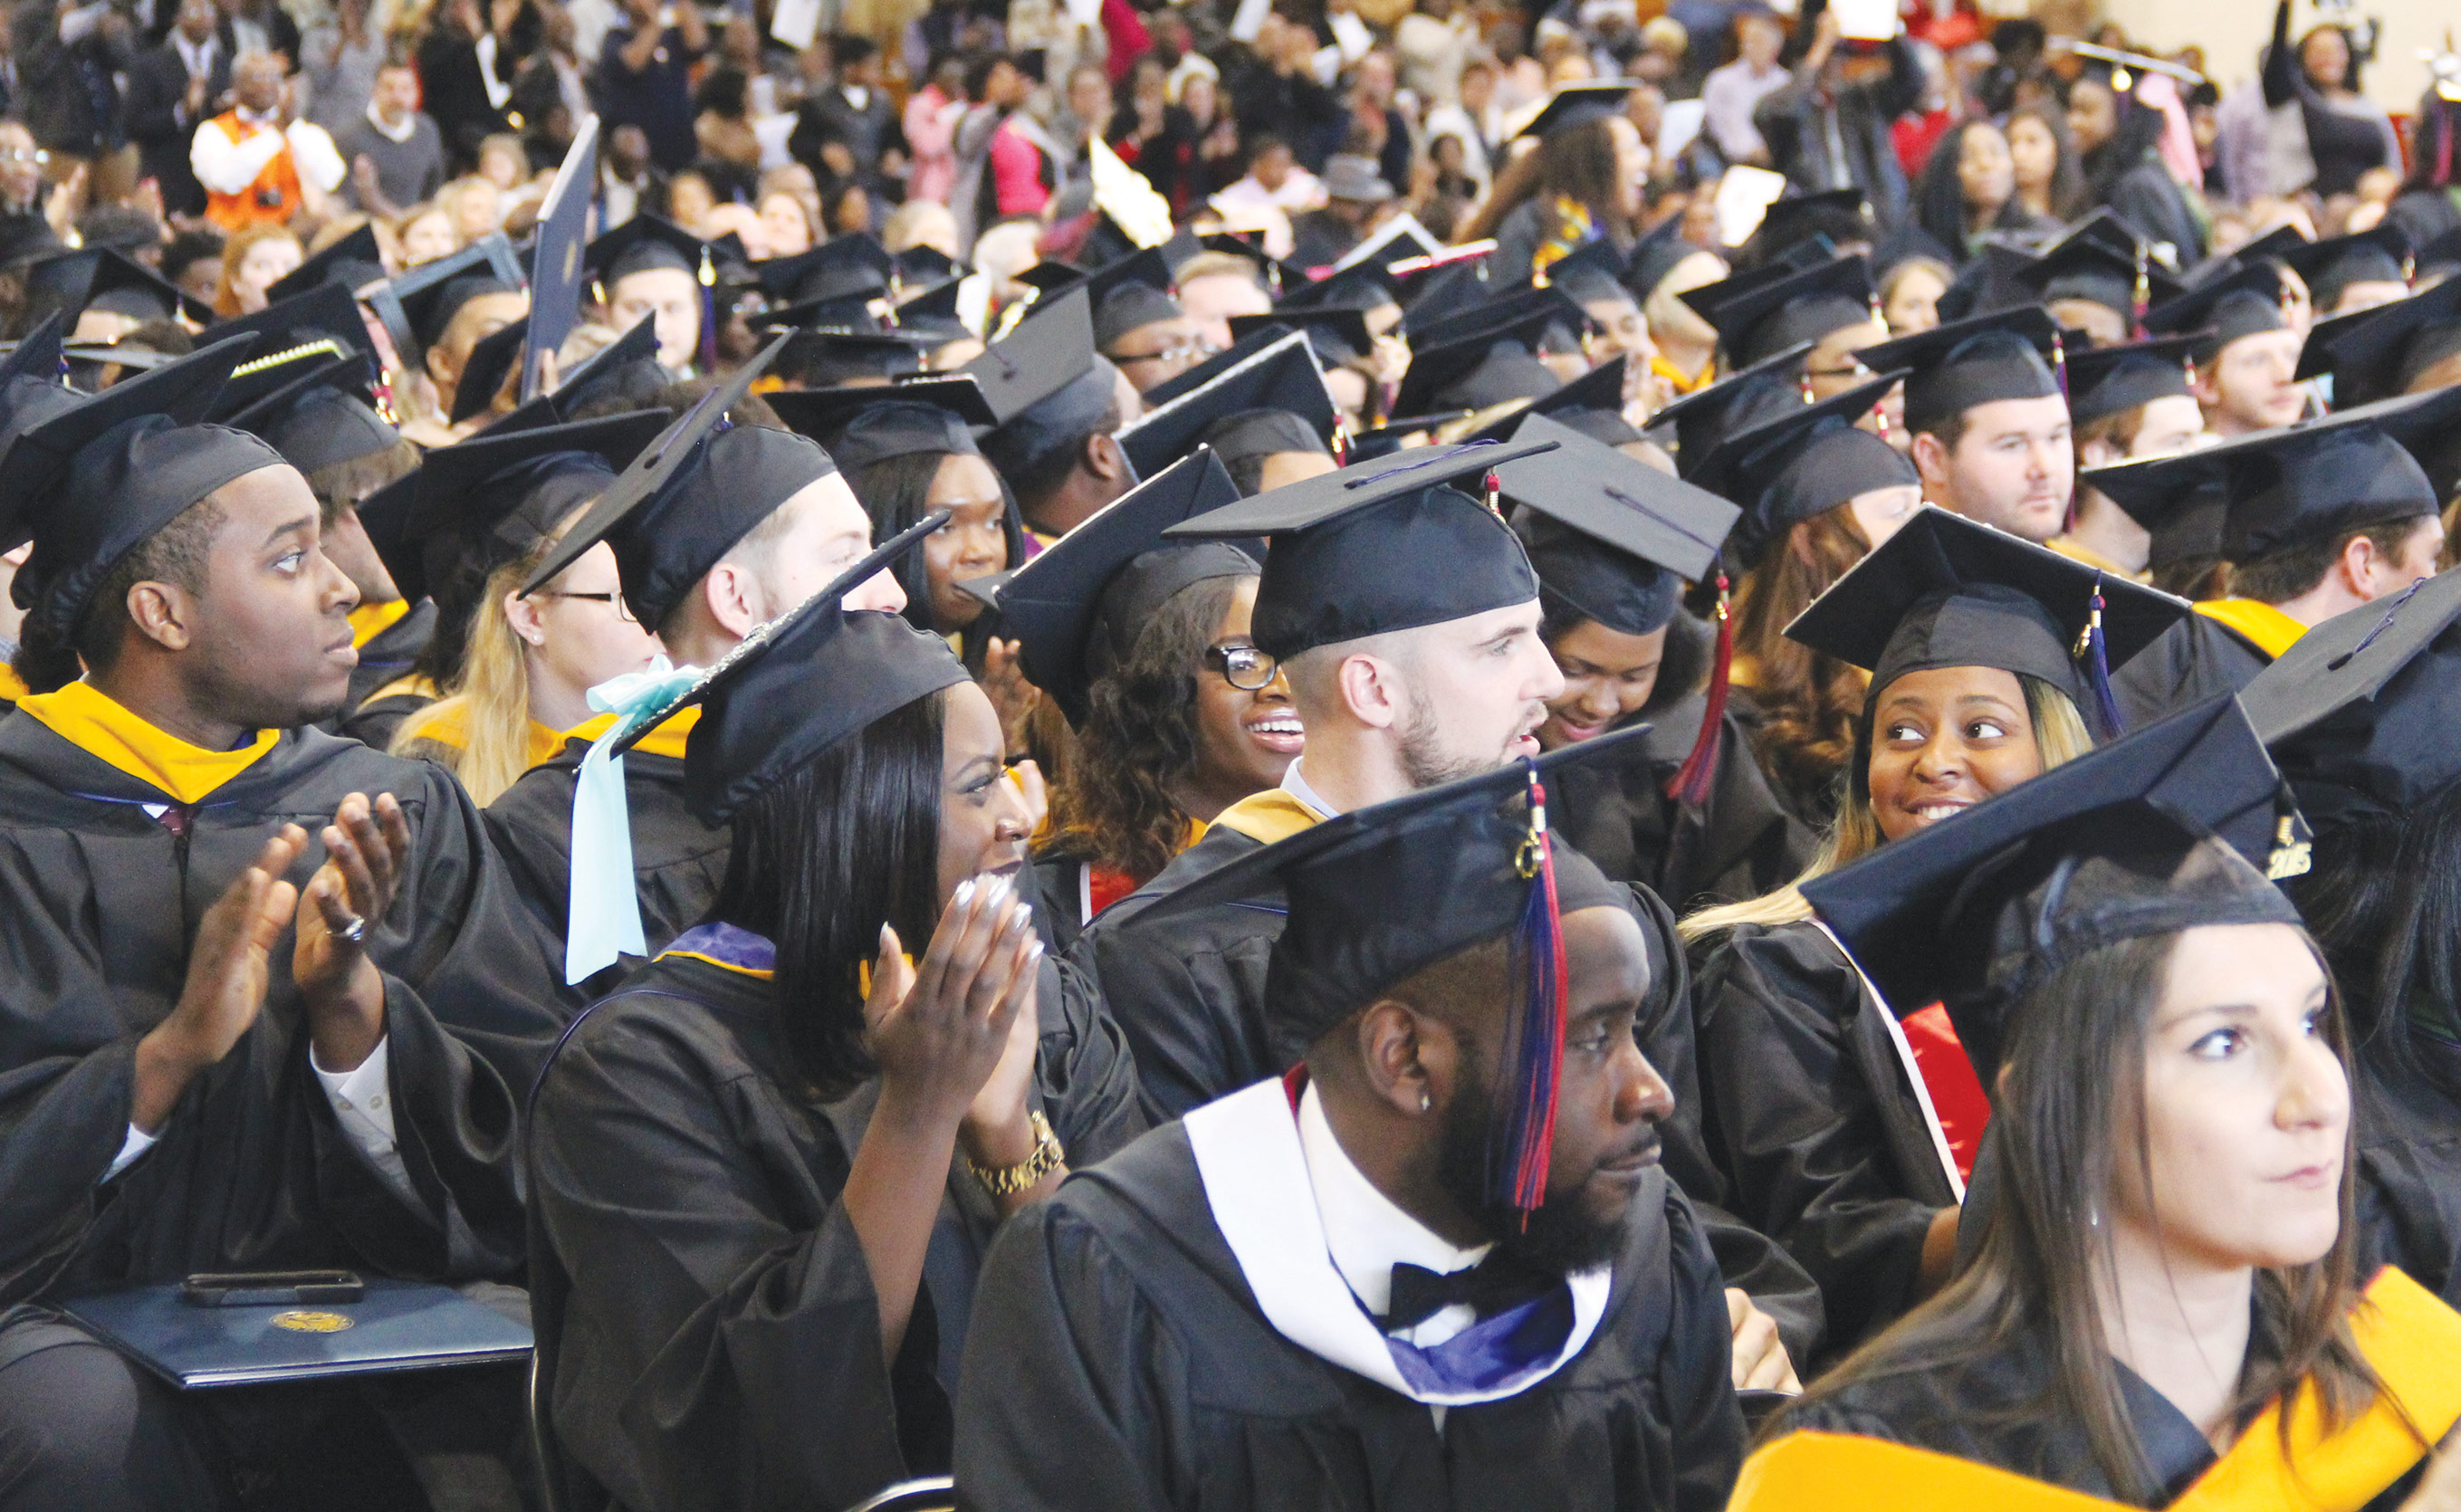 Students celebrate their achievements as they prepare to become alumni during FMU's fall commencement ceremony in December 2016.